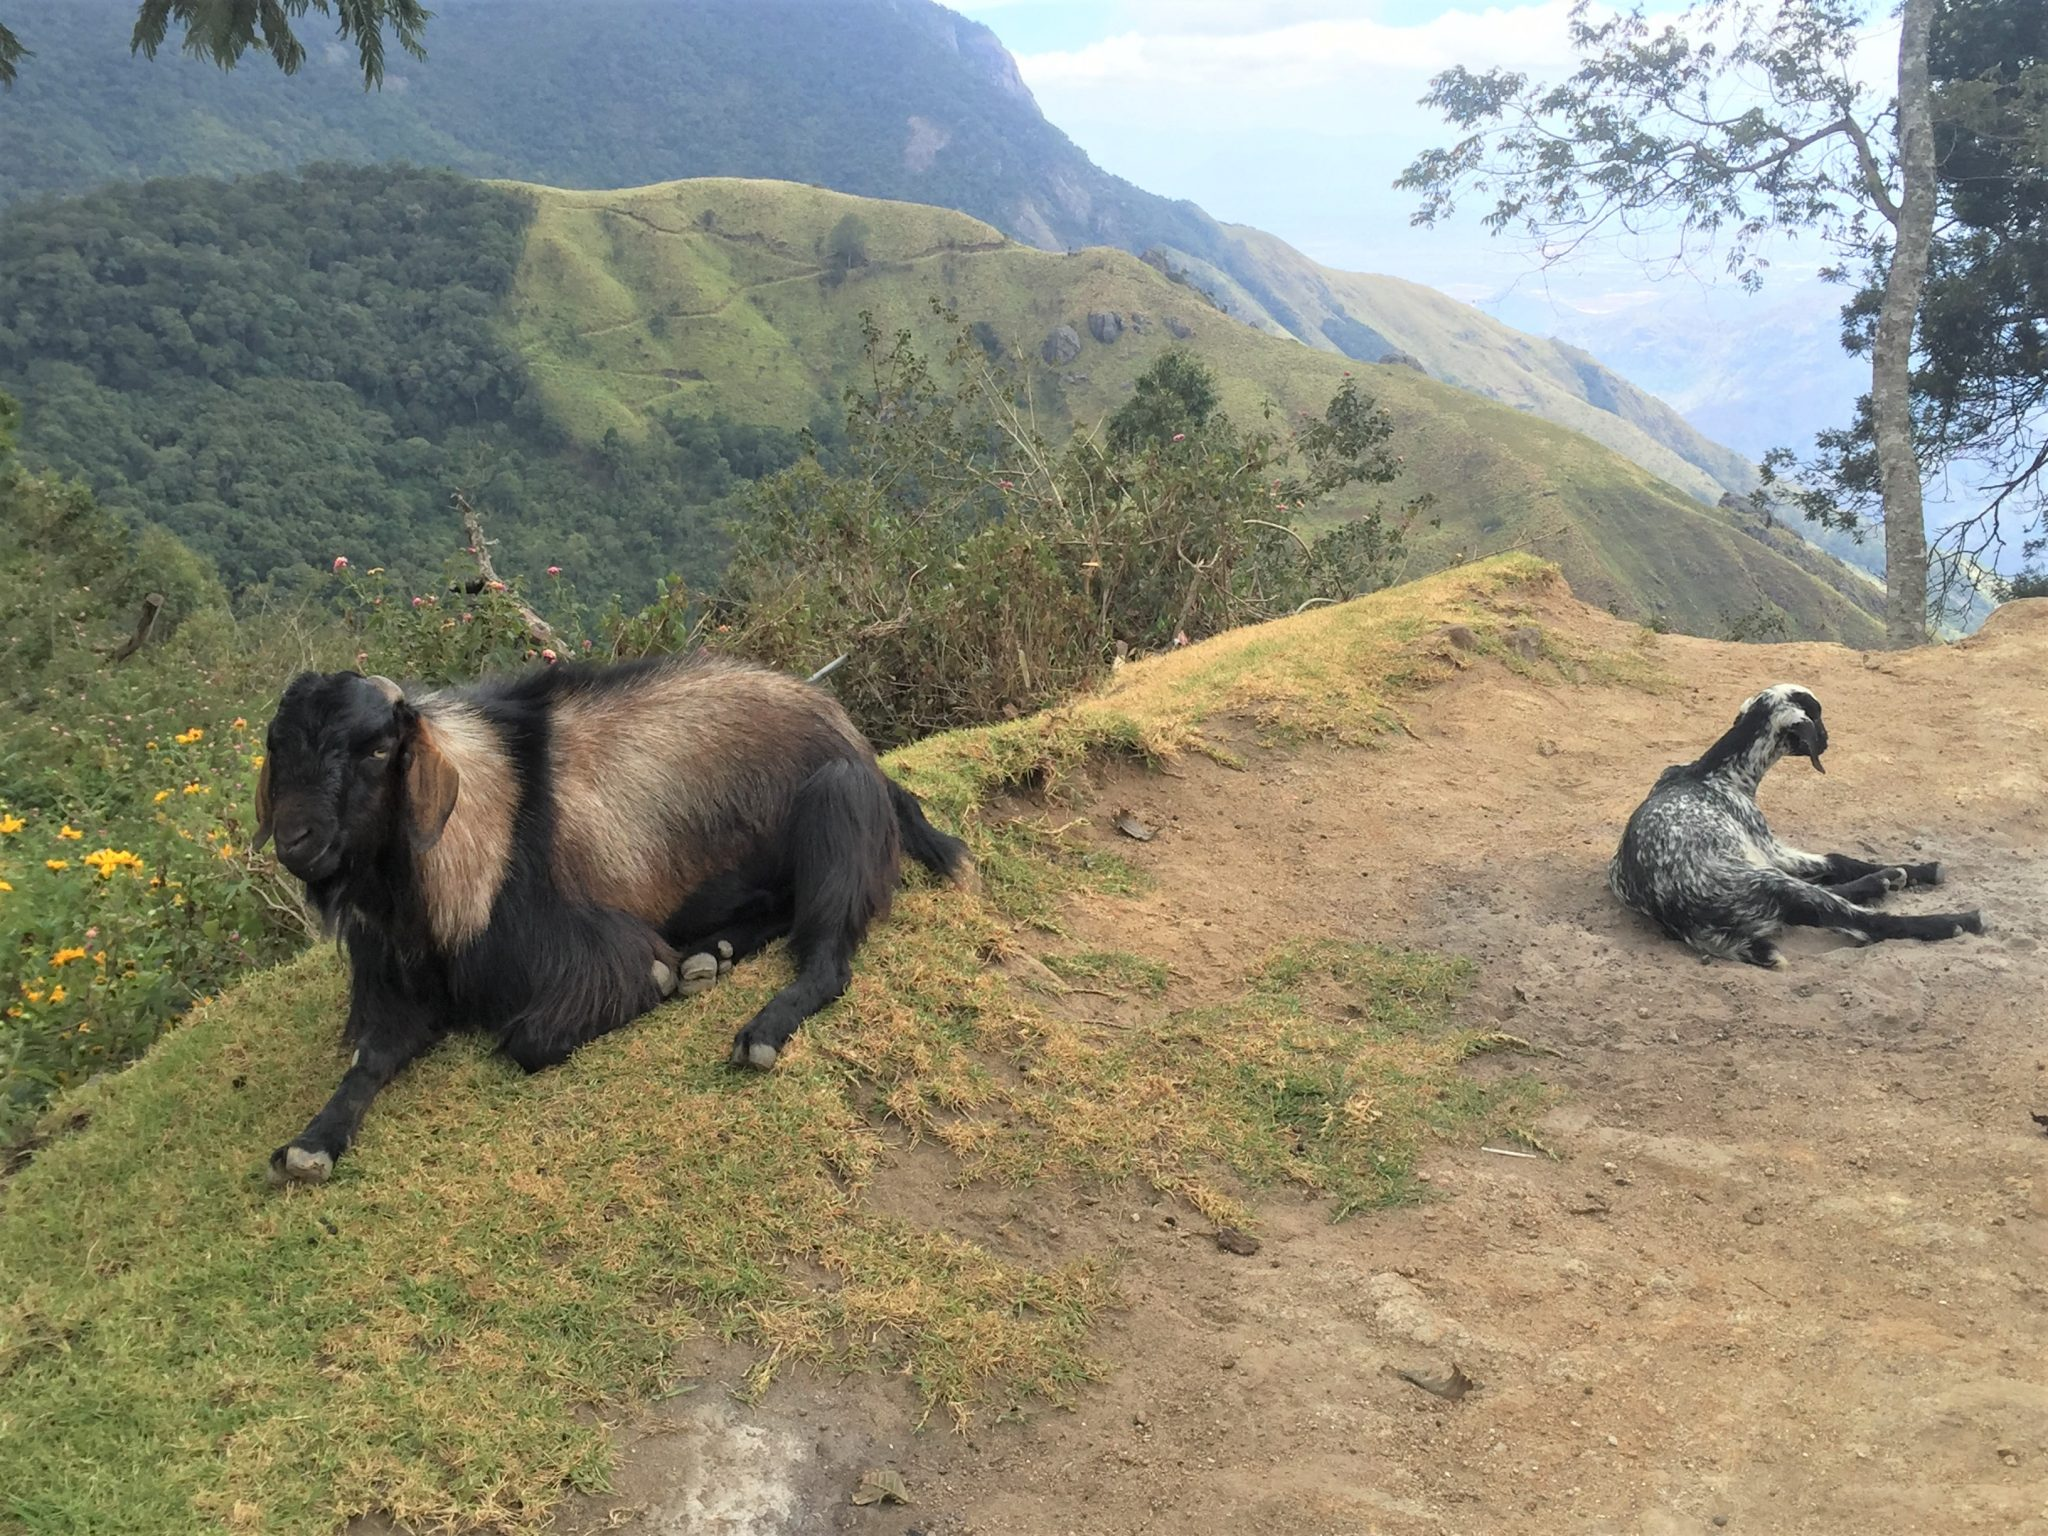 Goats laying calmly next to a sheer cliff in the Western Ghat Mountains, India.